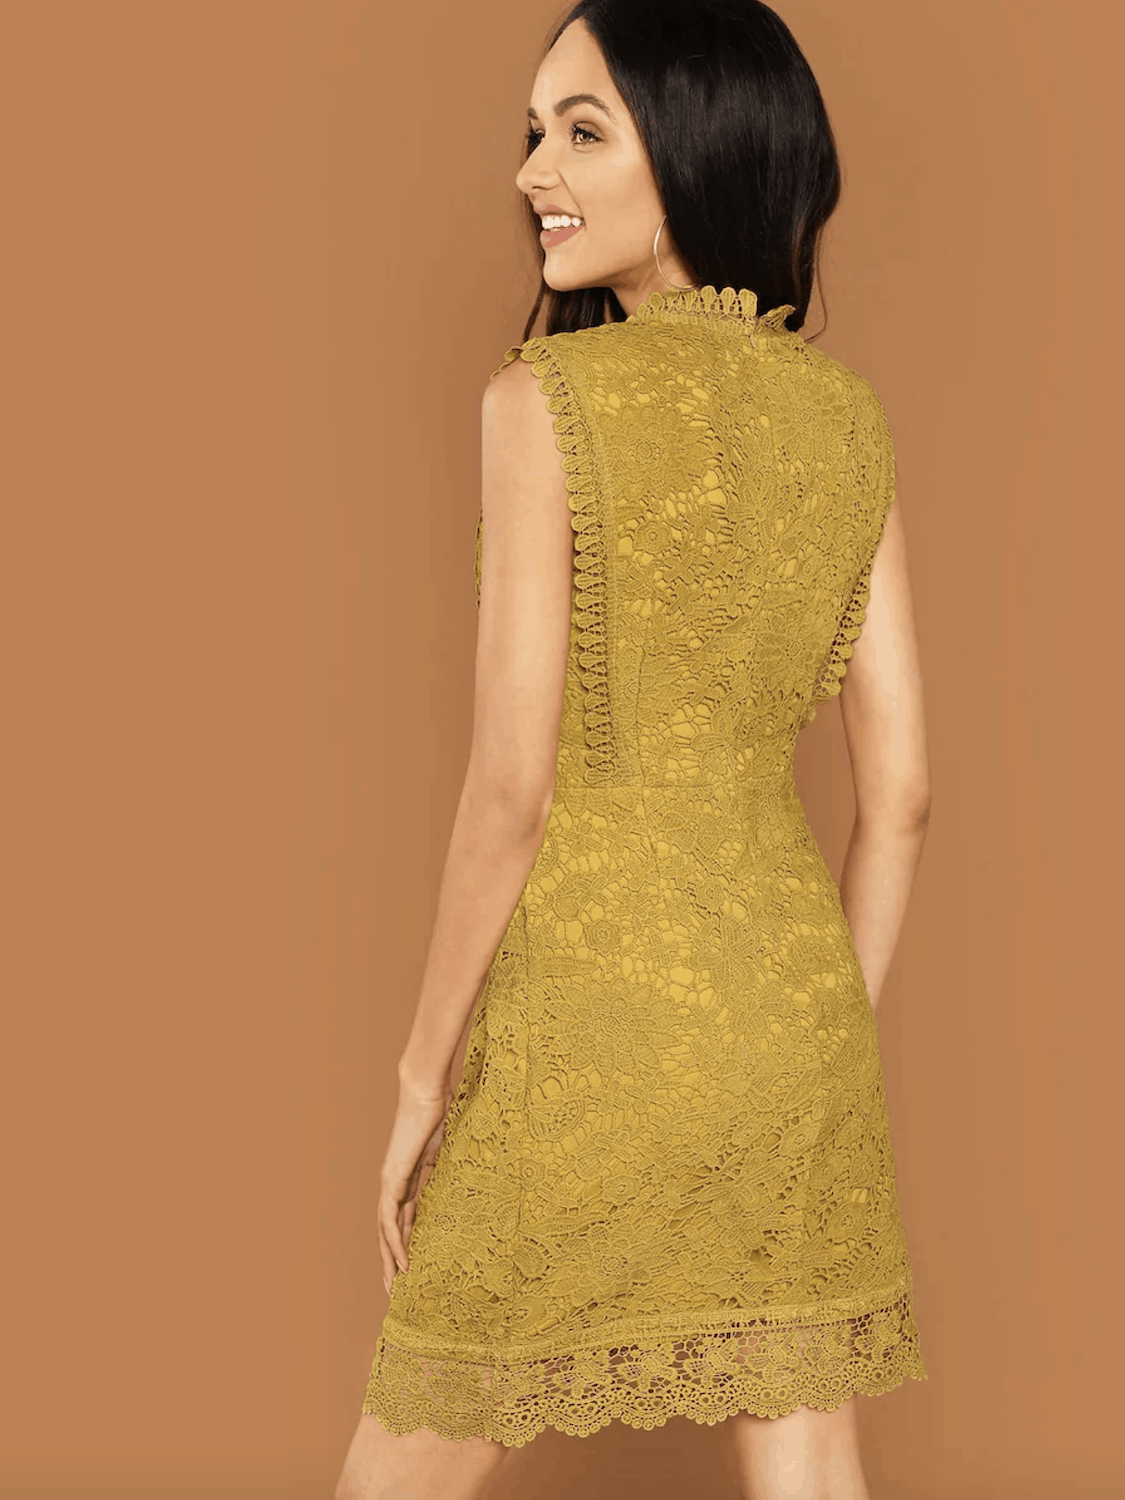 Bridal Shower Dresses for the Bride Guipure Lace Overlay Bodycon Mustard Dress 2